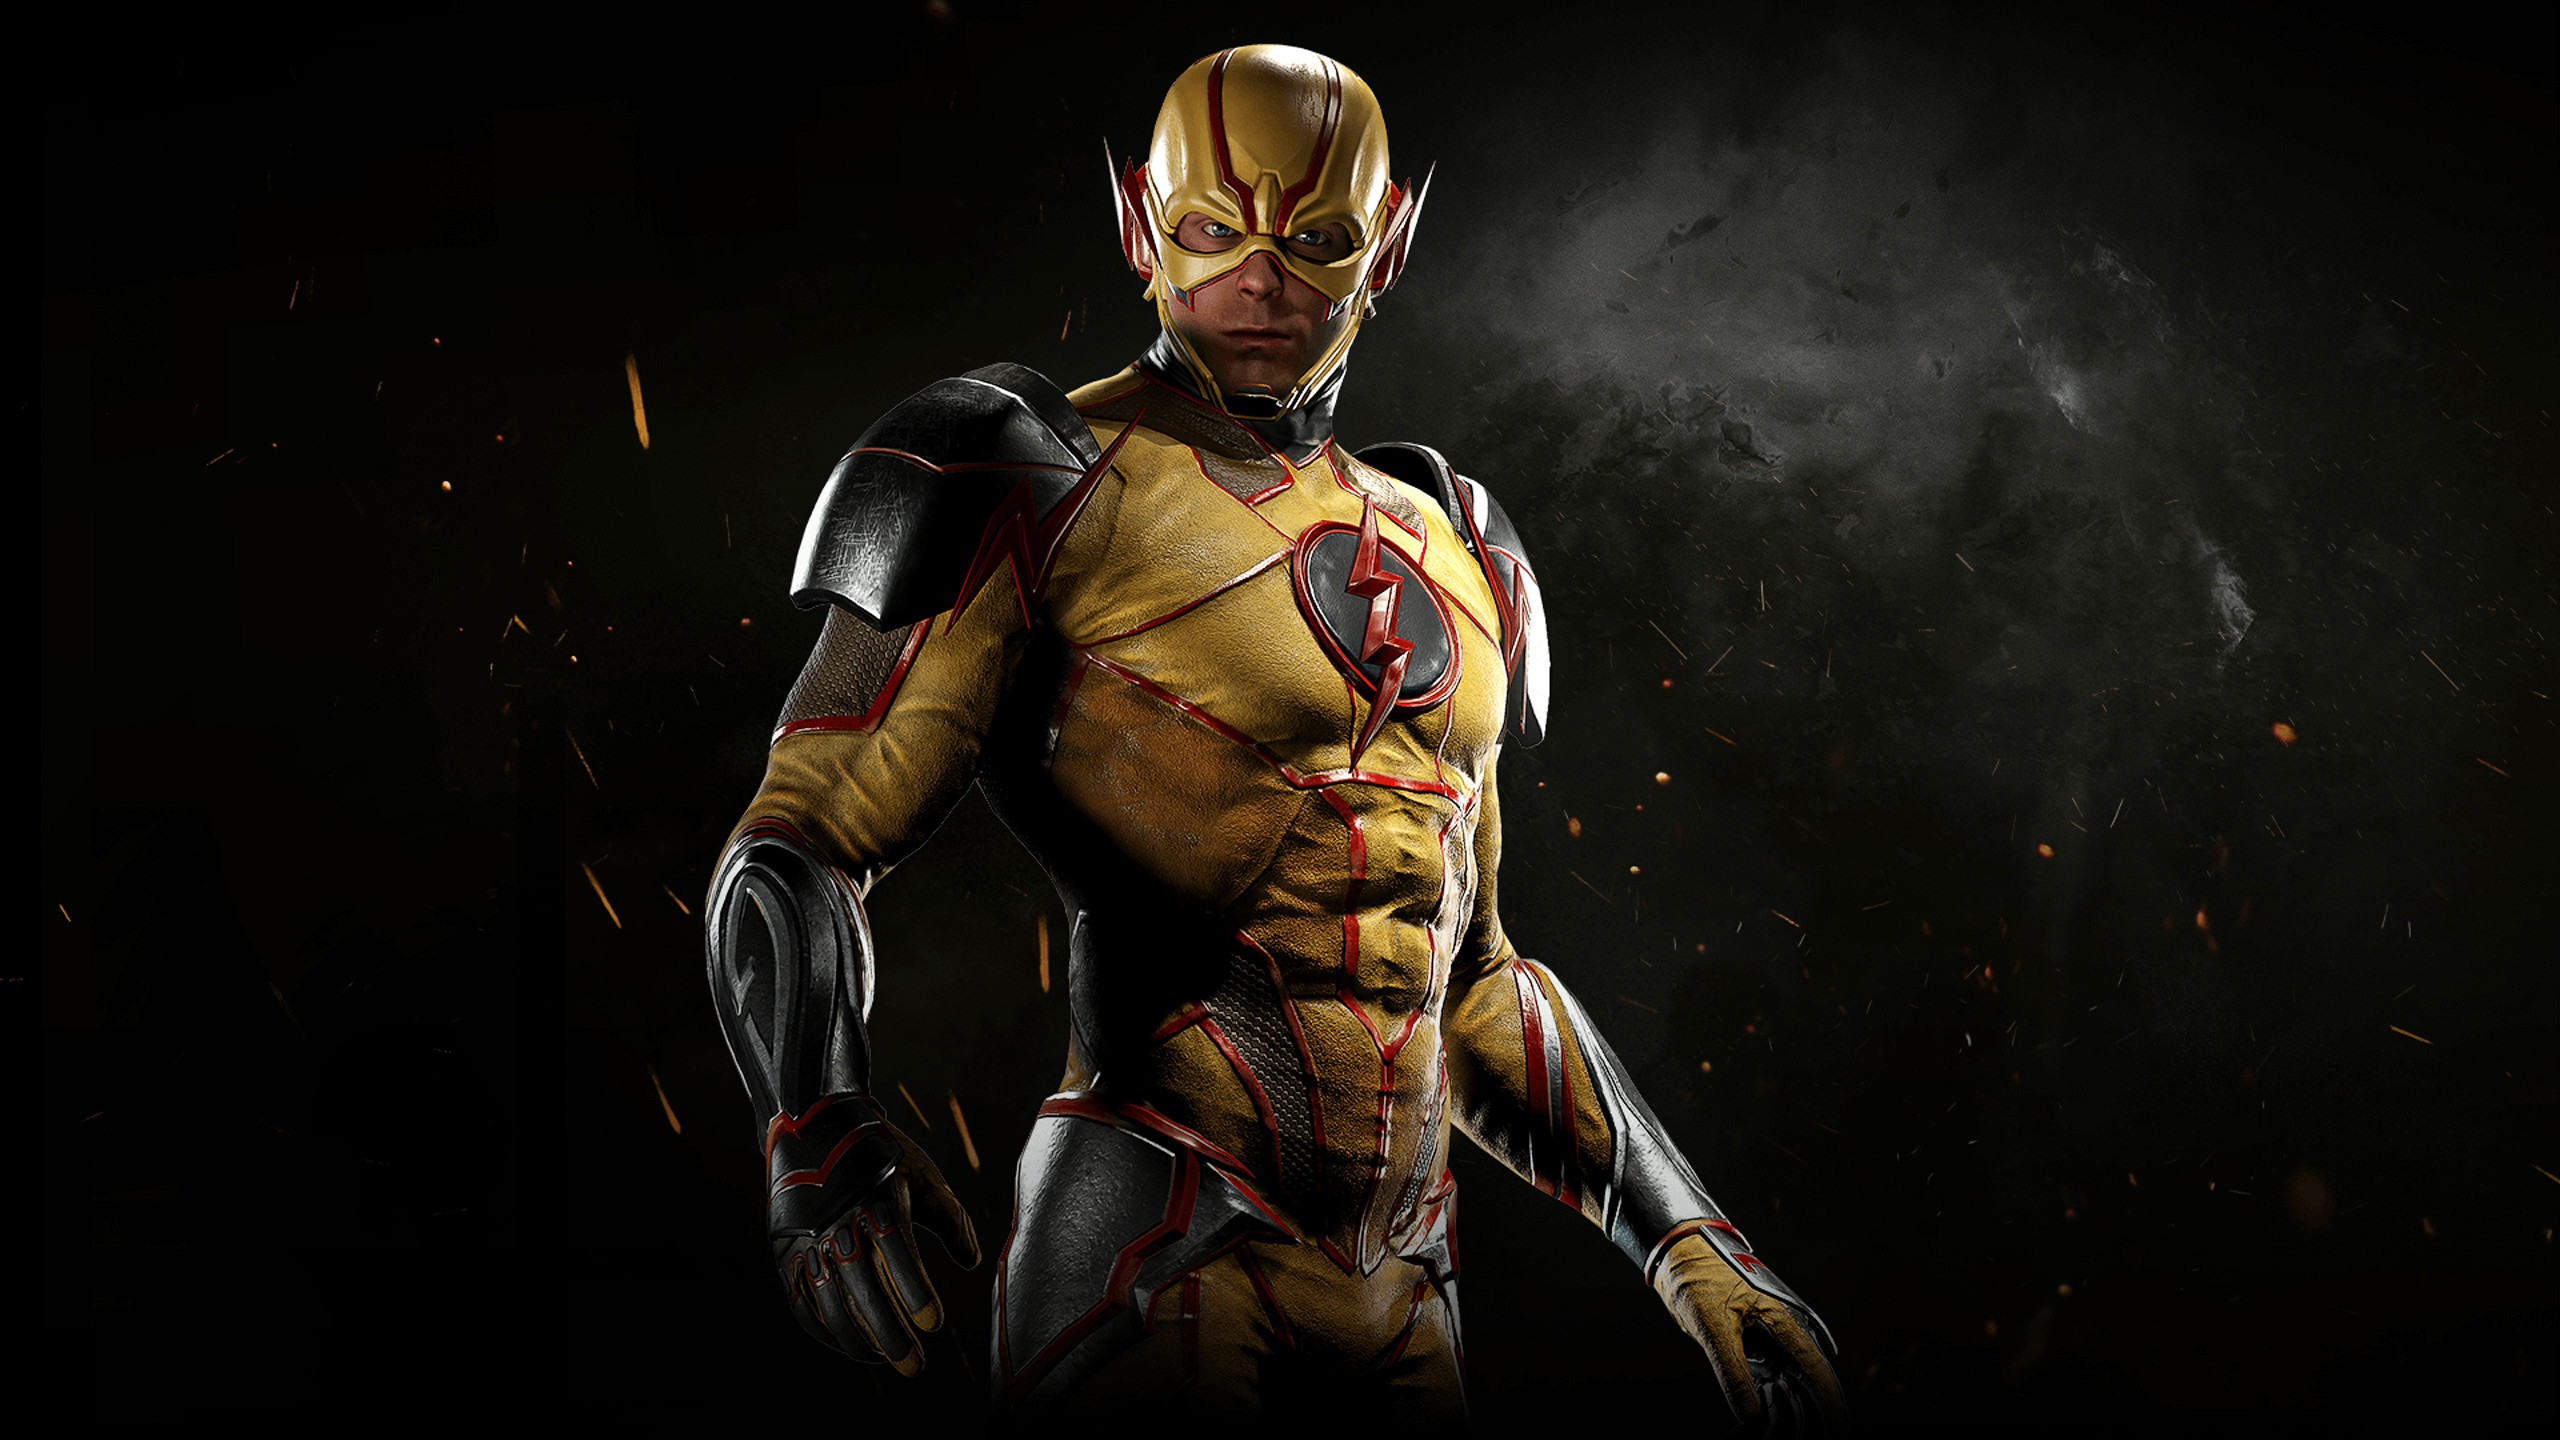 Flash Cw Flash Wallpaper Flash Vs Flash Comics